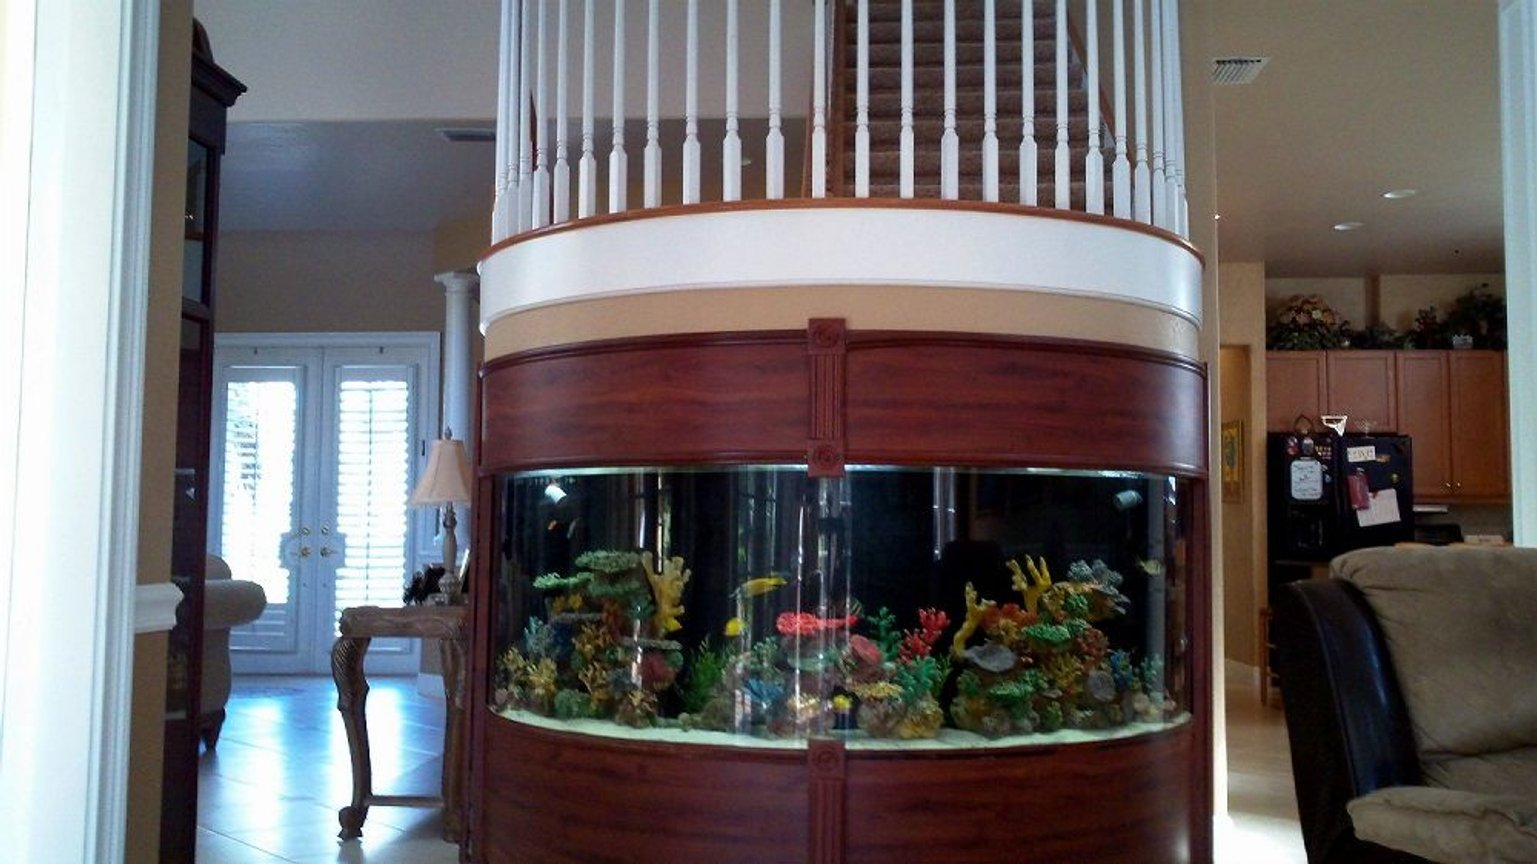 fish tank picture - further away view